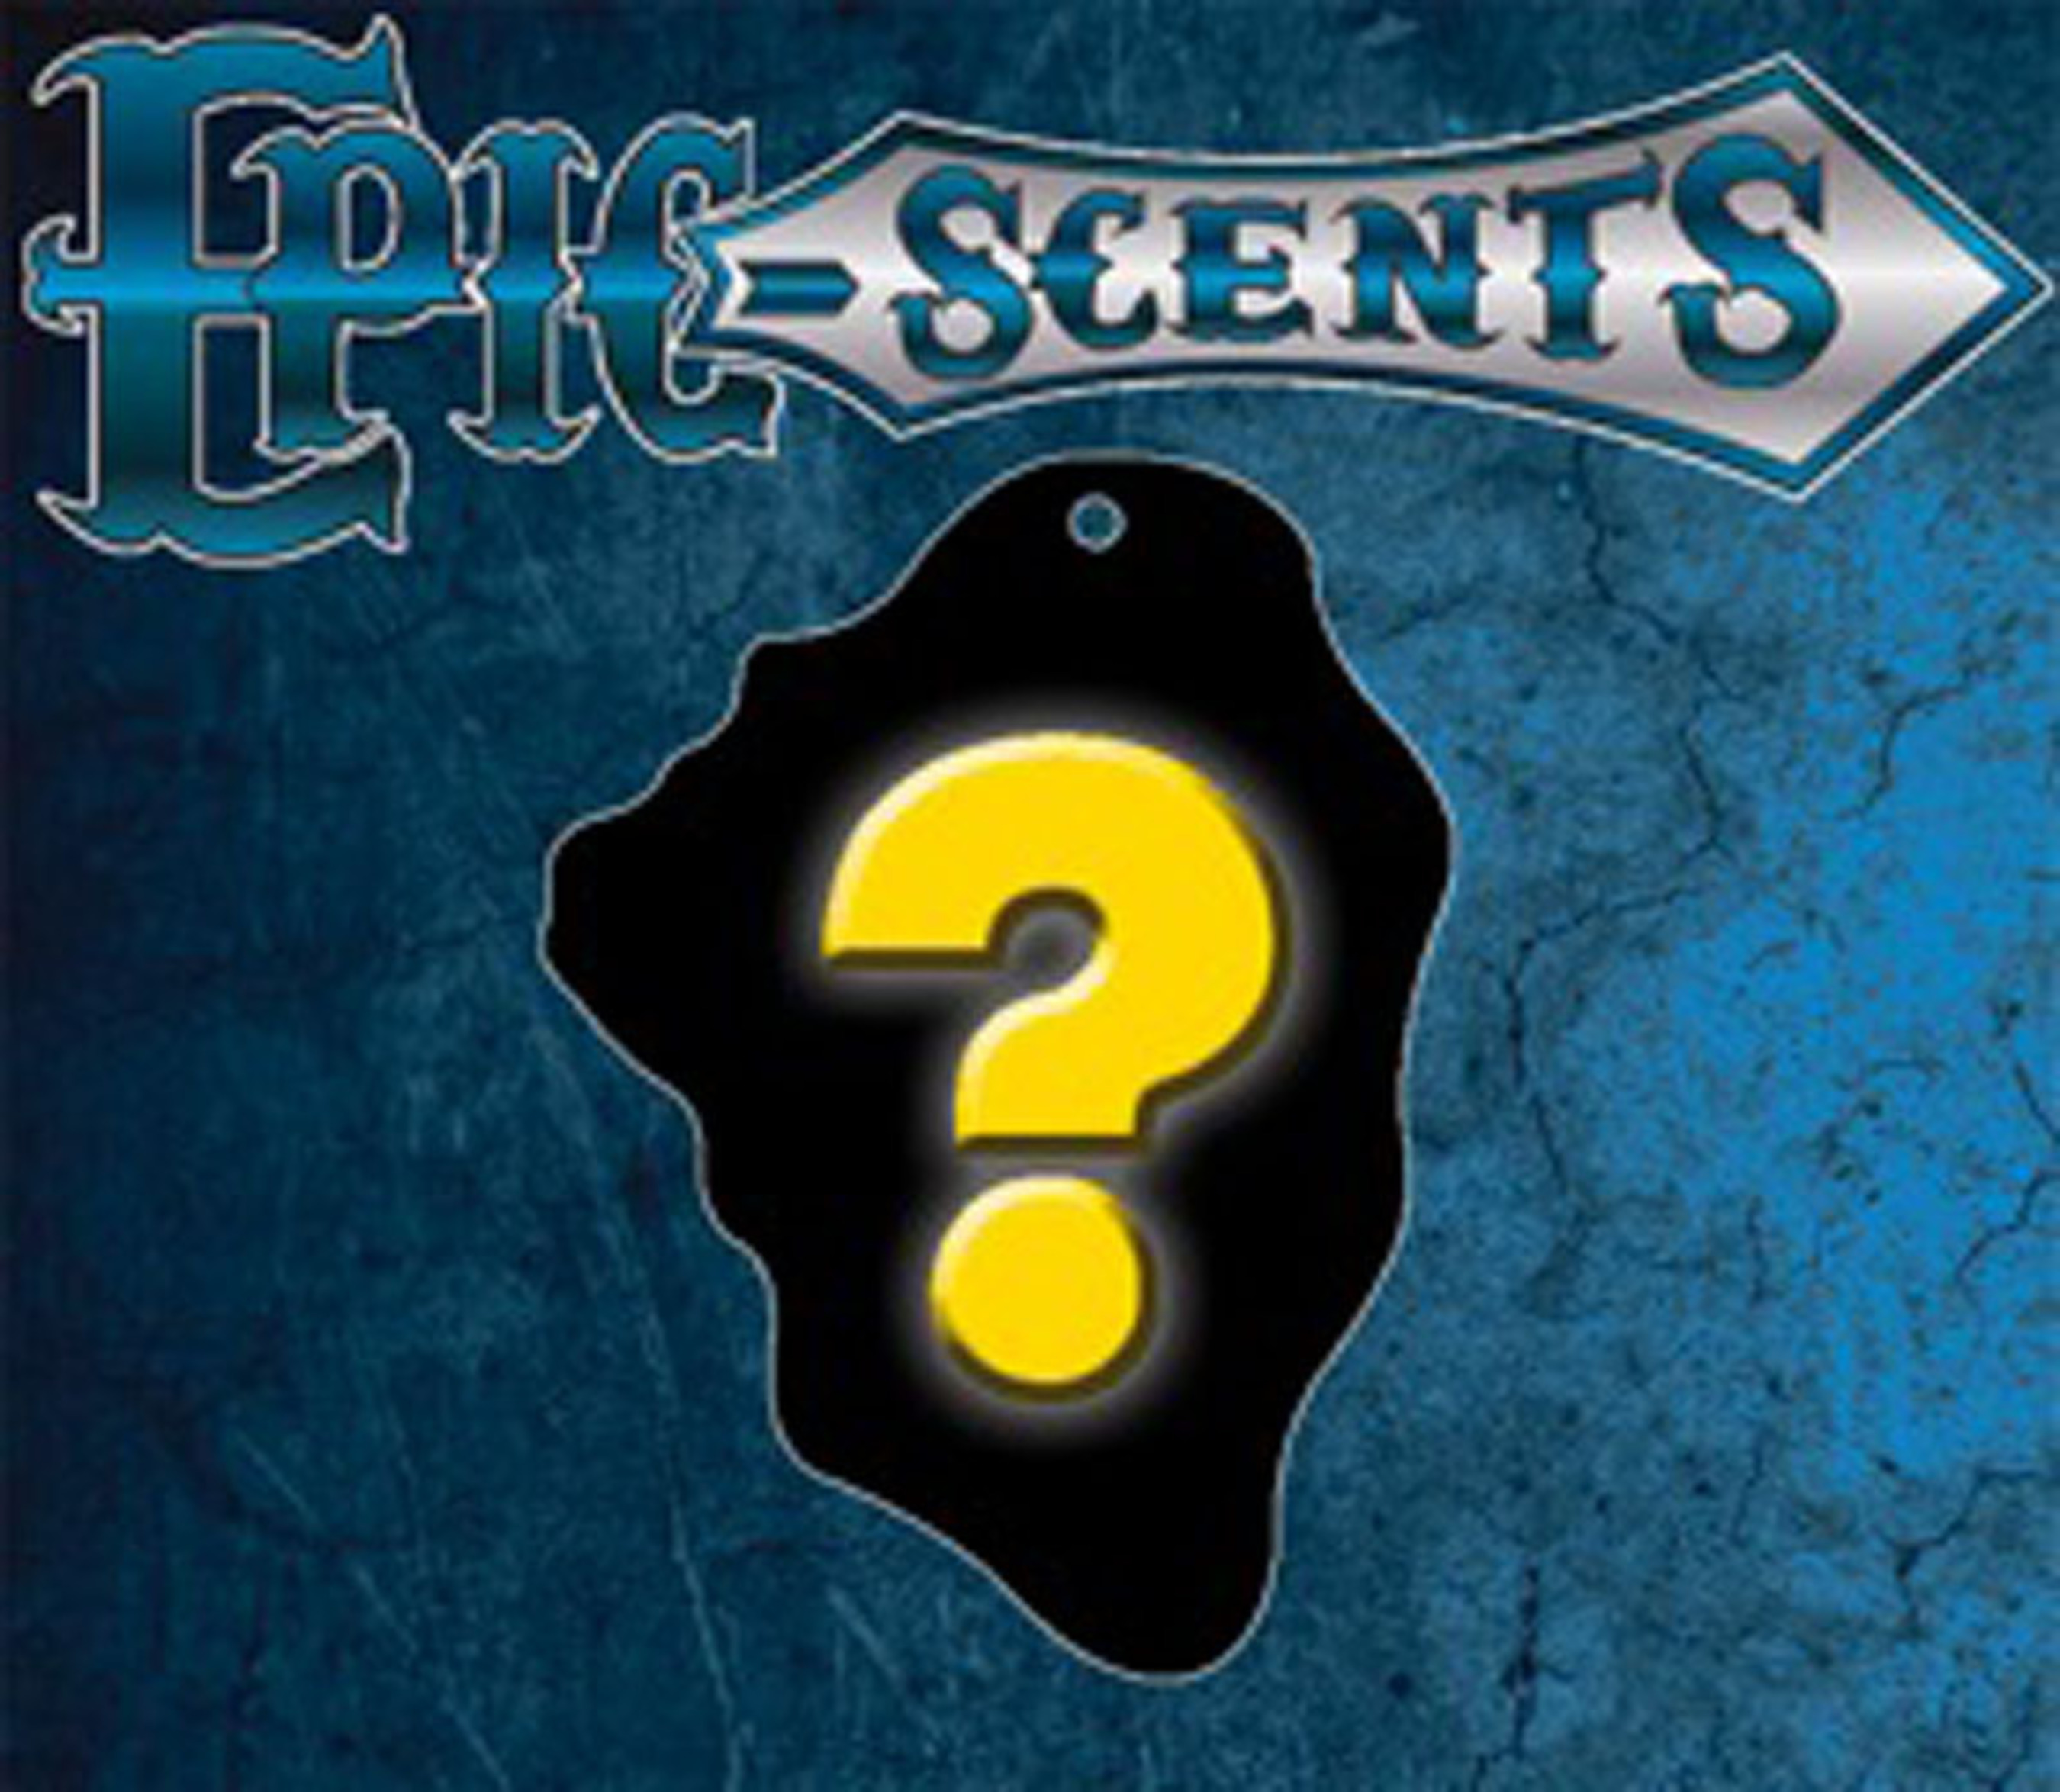 Epic-Scents Teams with Sega to launch new product line.(PRNewsFoto/Epic-Scents)